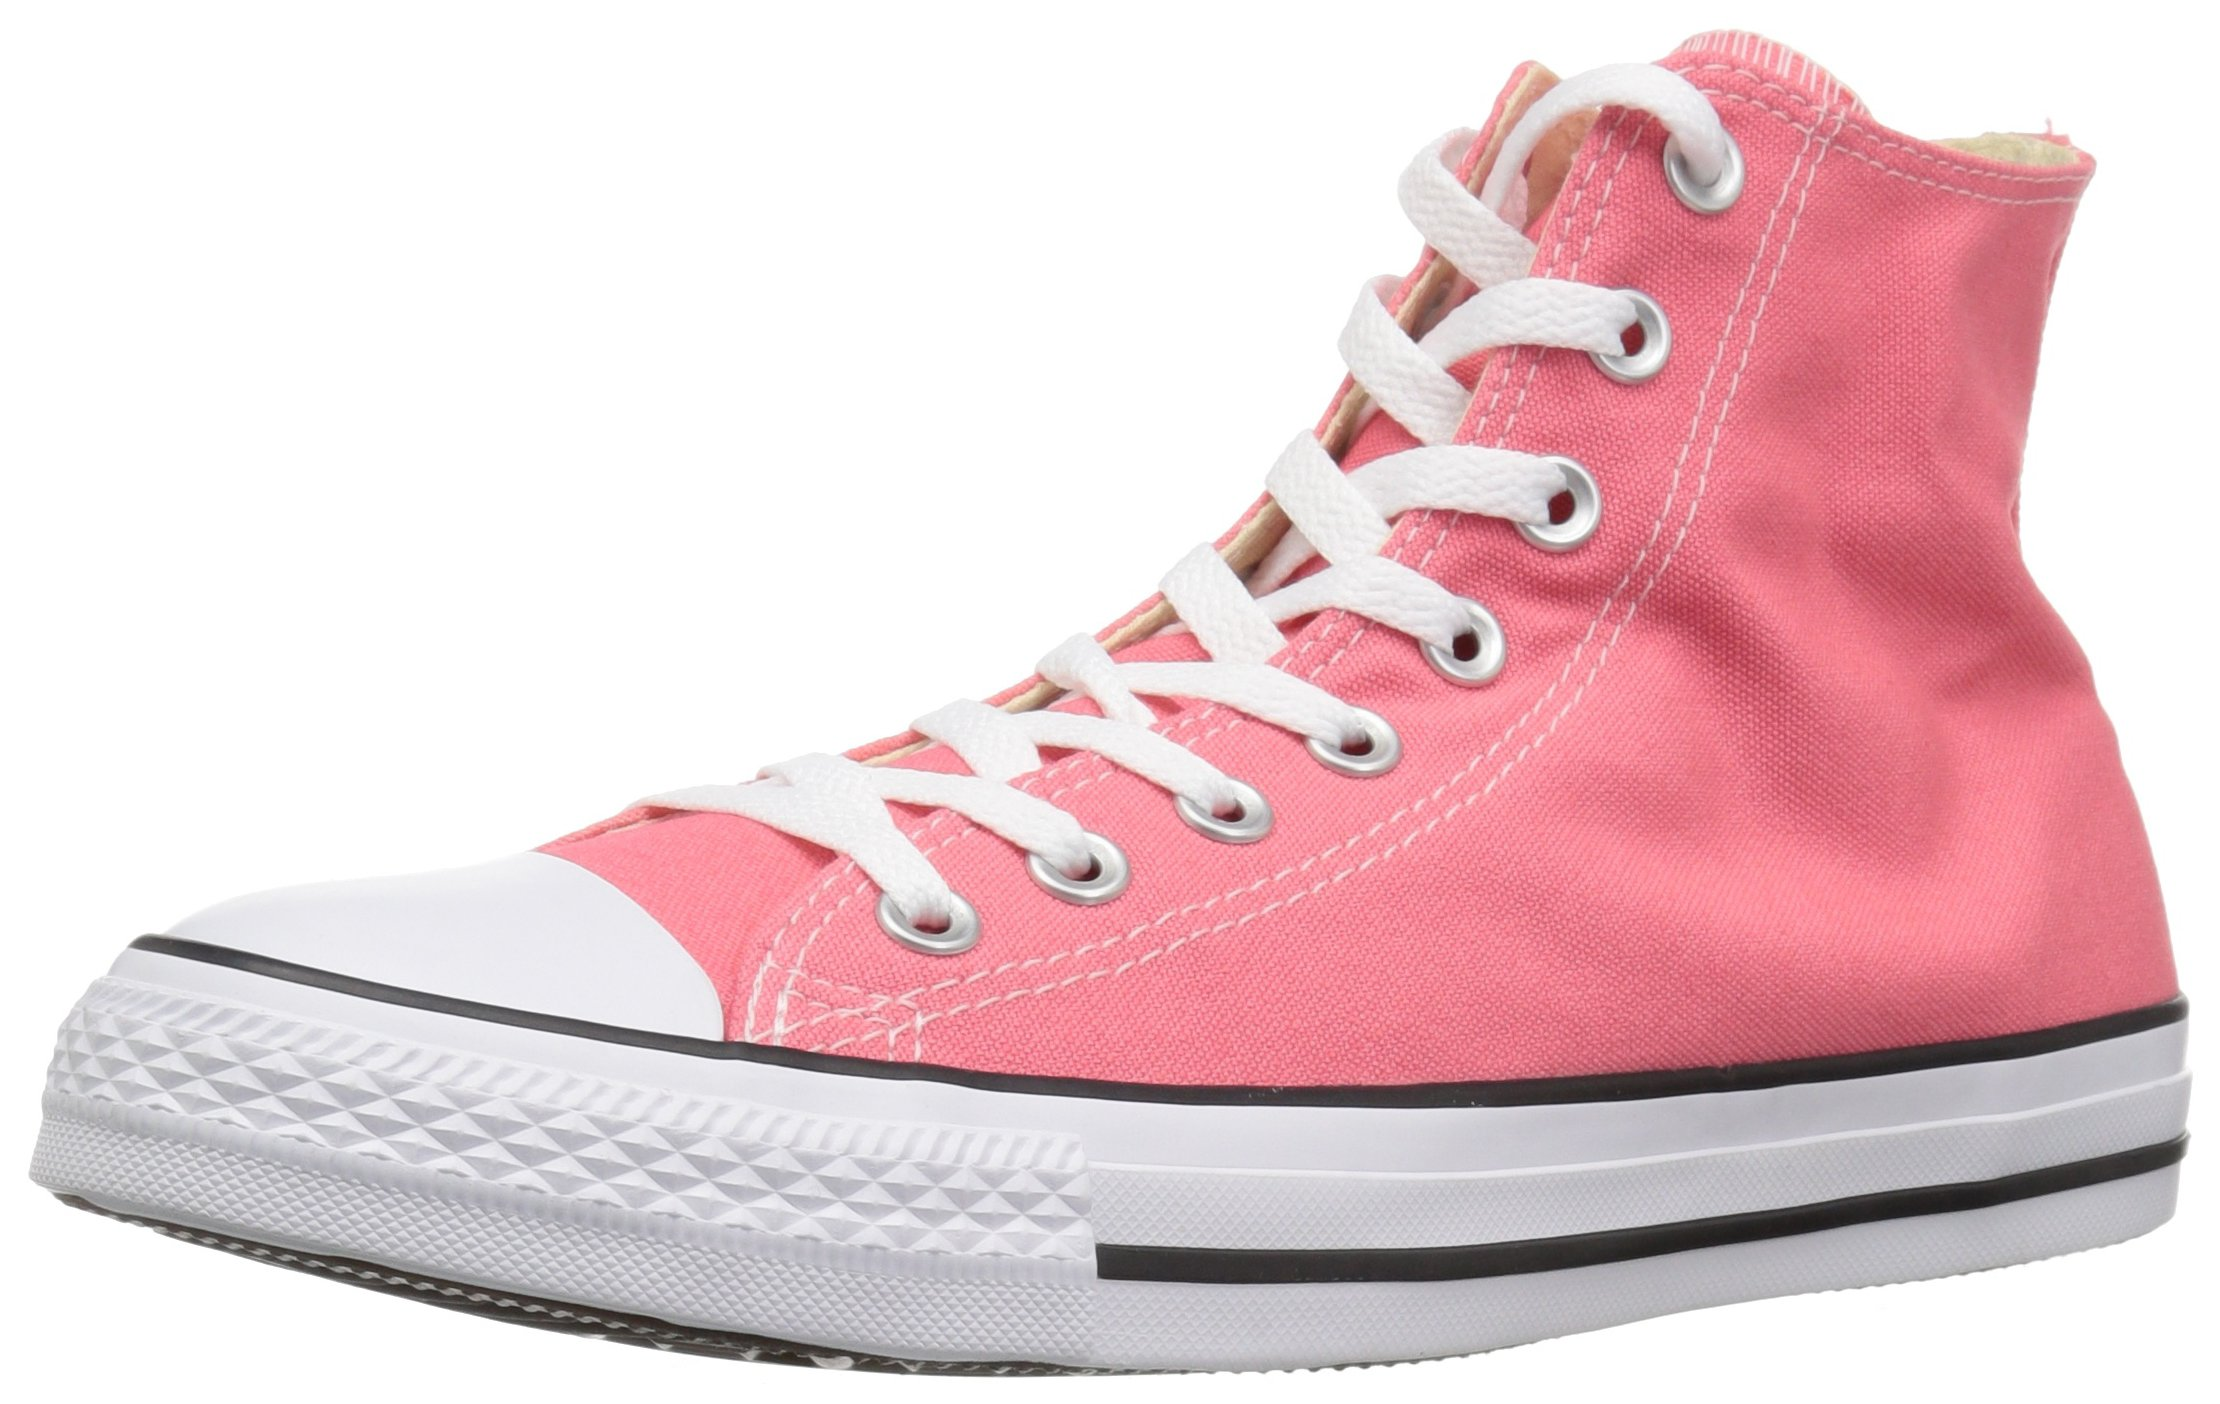 9e819e9f271f Galleon - Converse Chuck Taylor All Star 2018 Seasonal High Top Sneaker  Punch Coral 3 M US